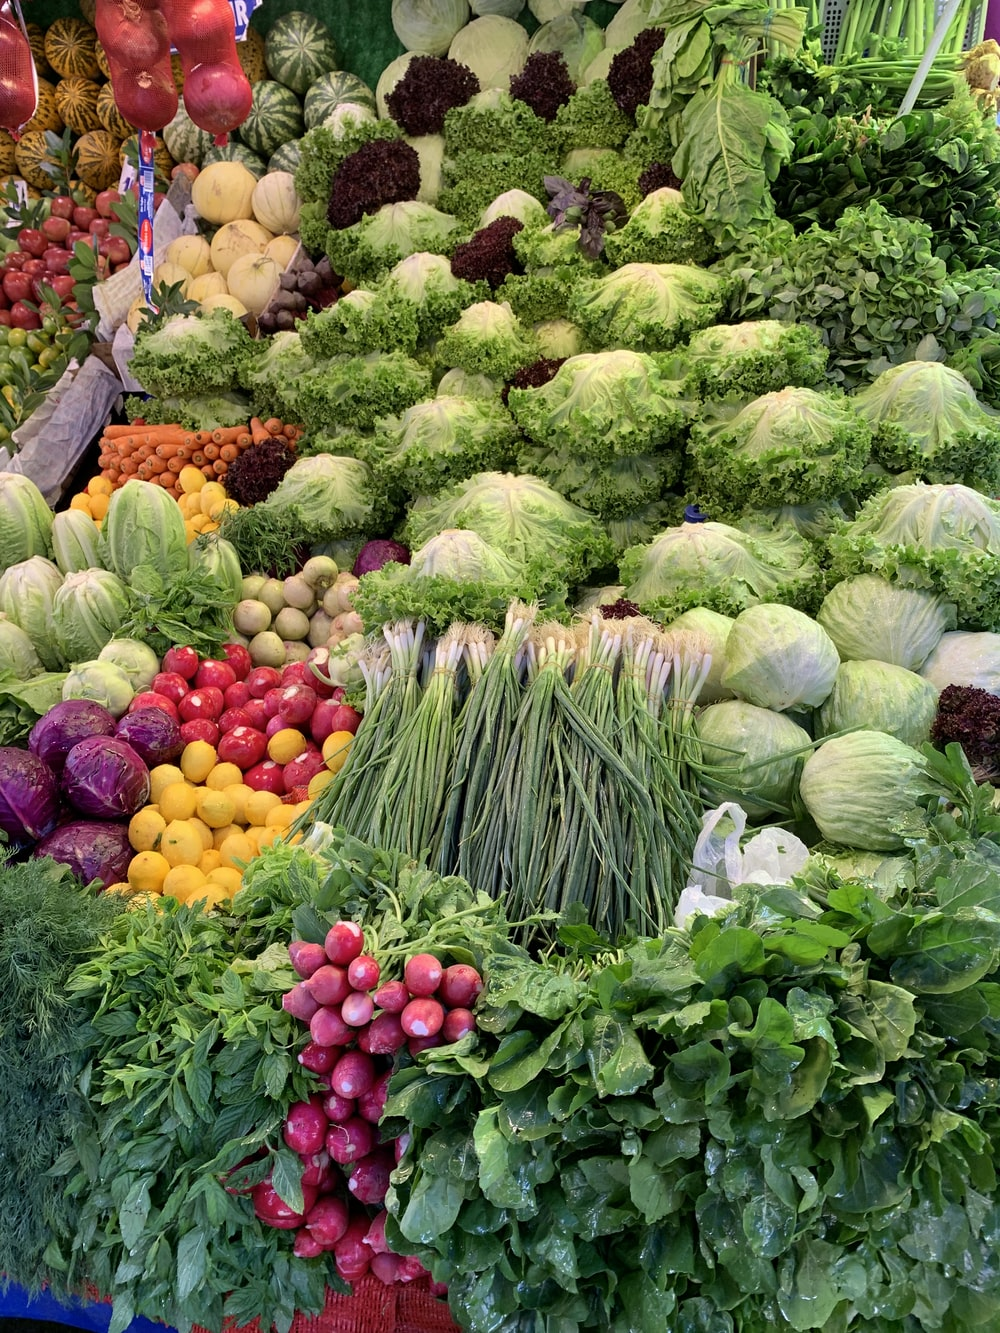 green and yellow vegetables and fruits